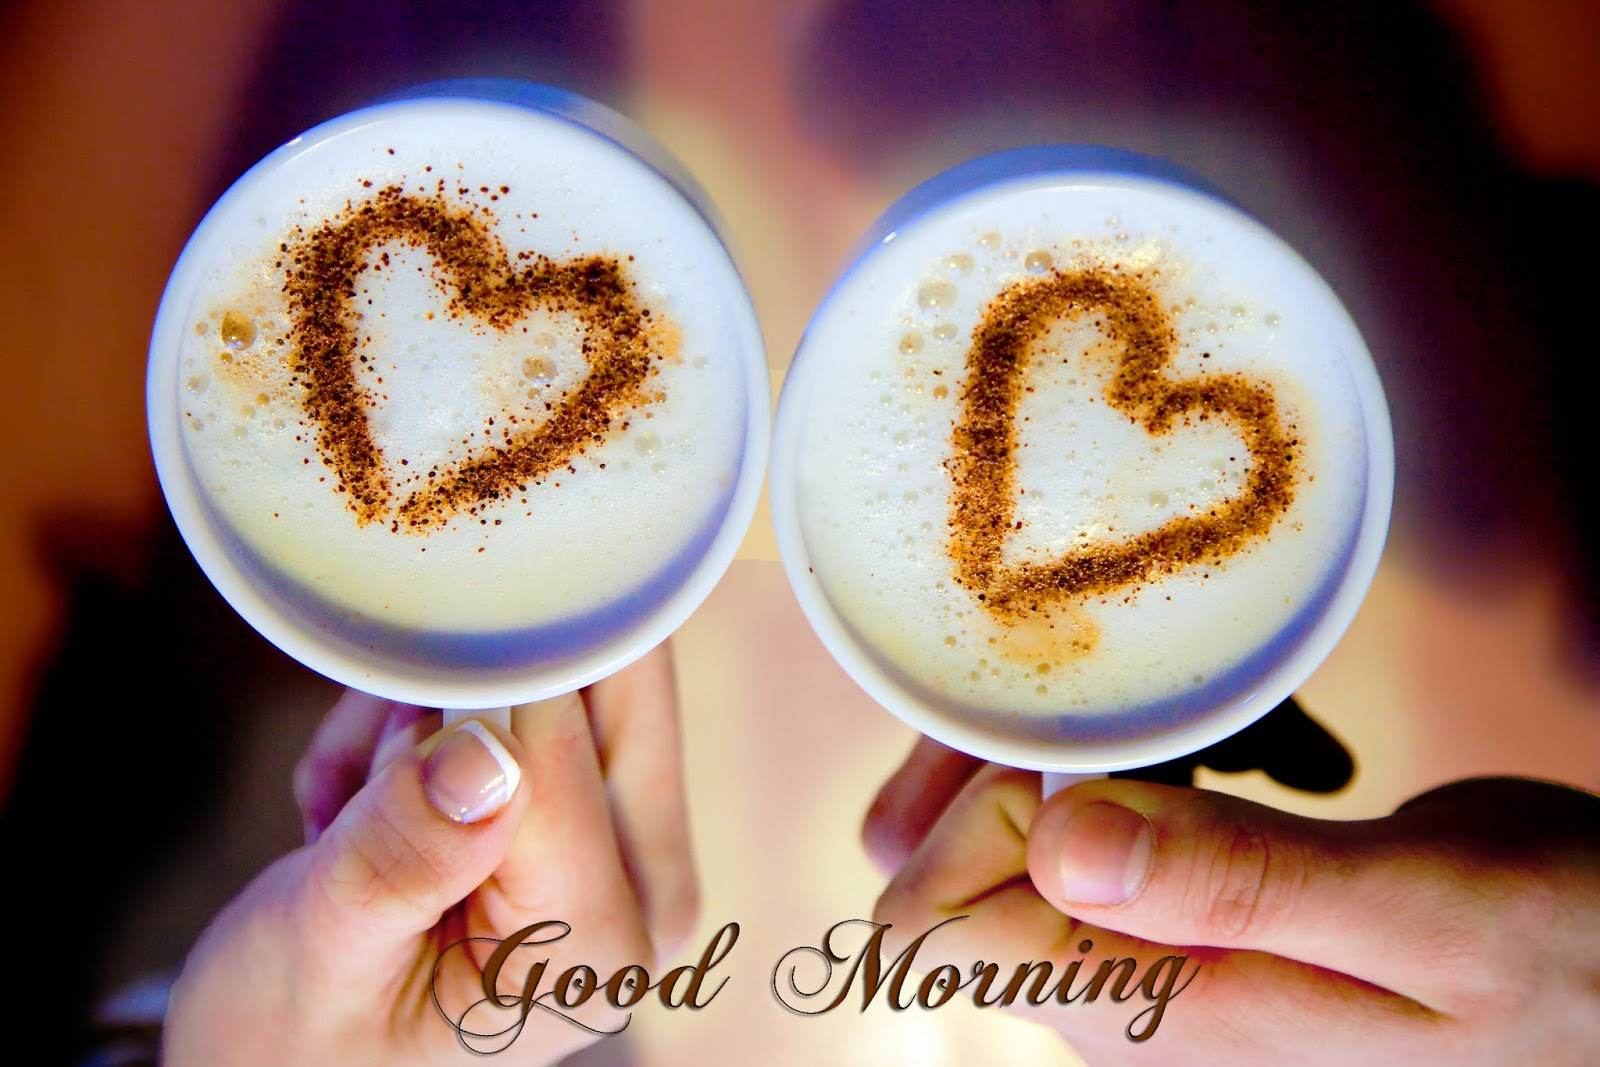 Good Morning Coffee: Fine Wallpapers HD: Download High Resolution Wallpapers Of